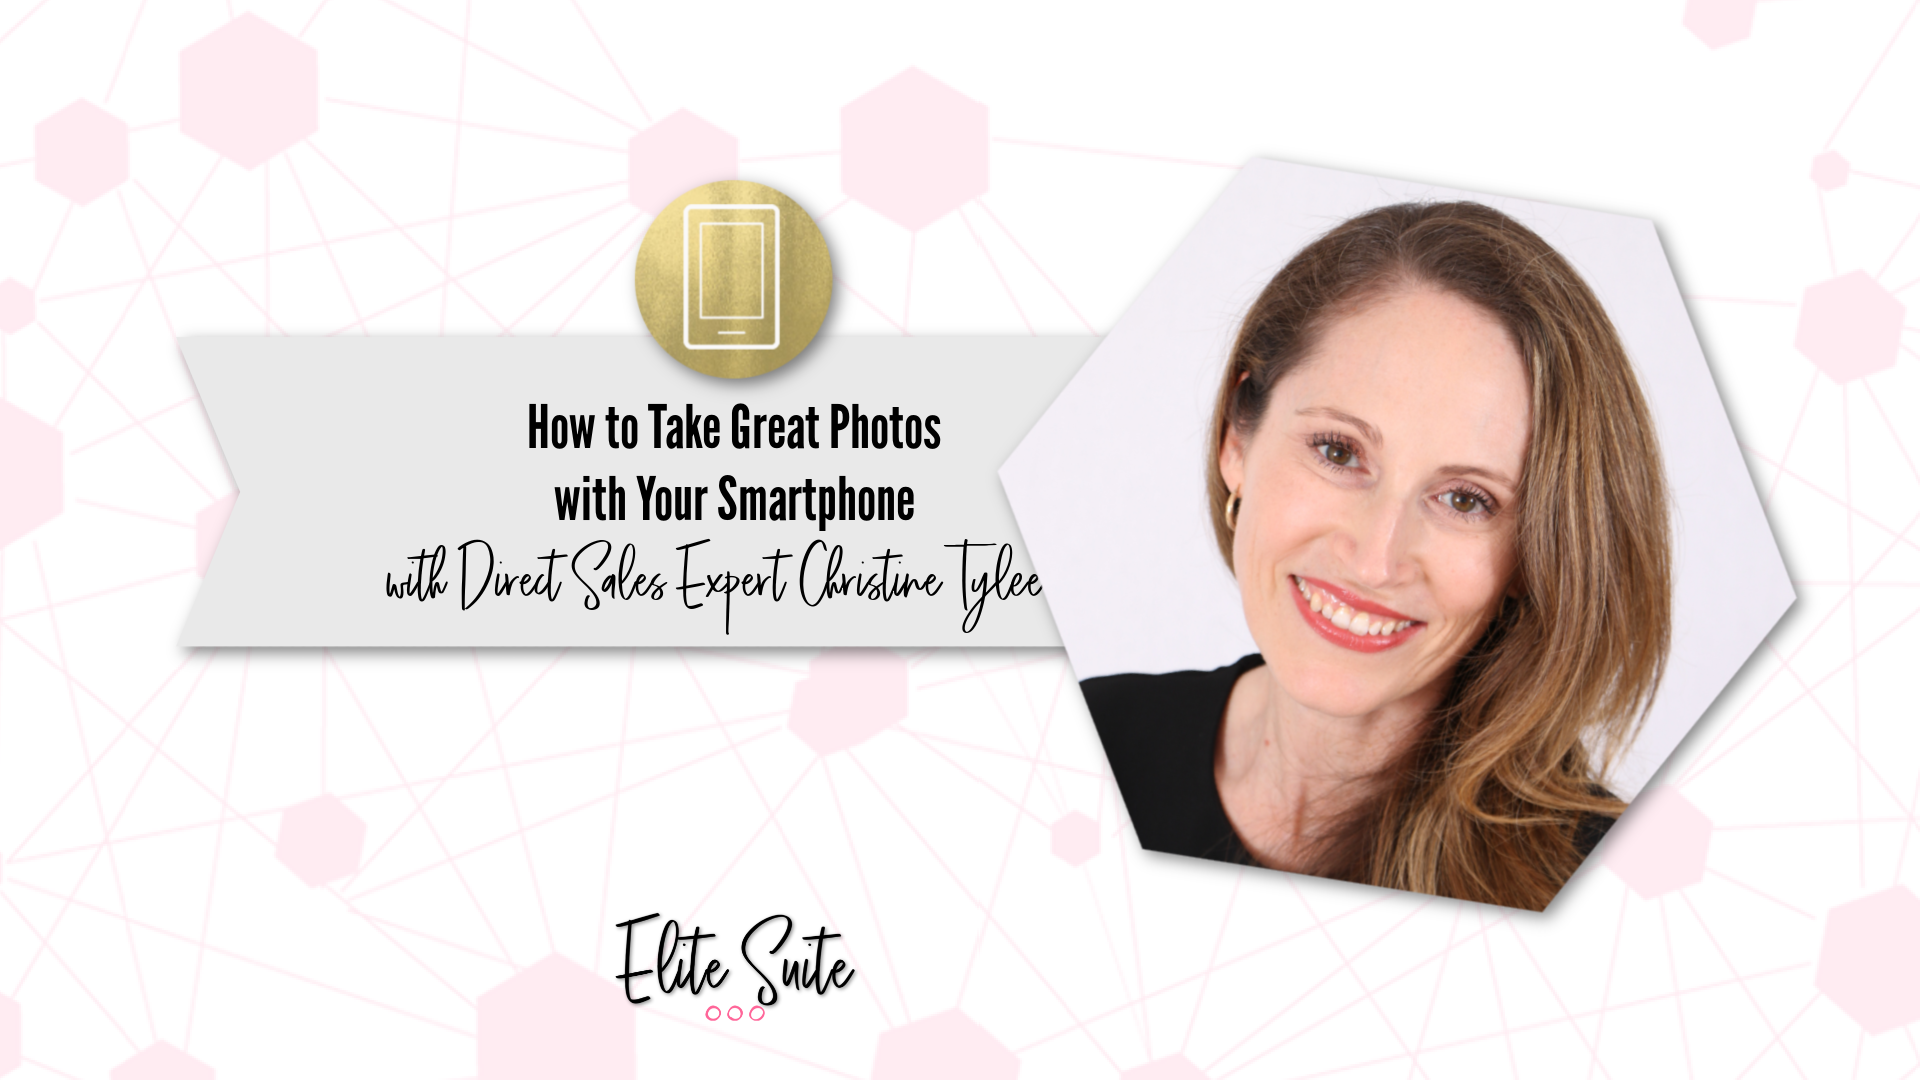 How to Take Great Pictures with Your Smart Phone - Masterclass title overlay